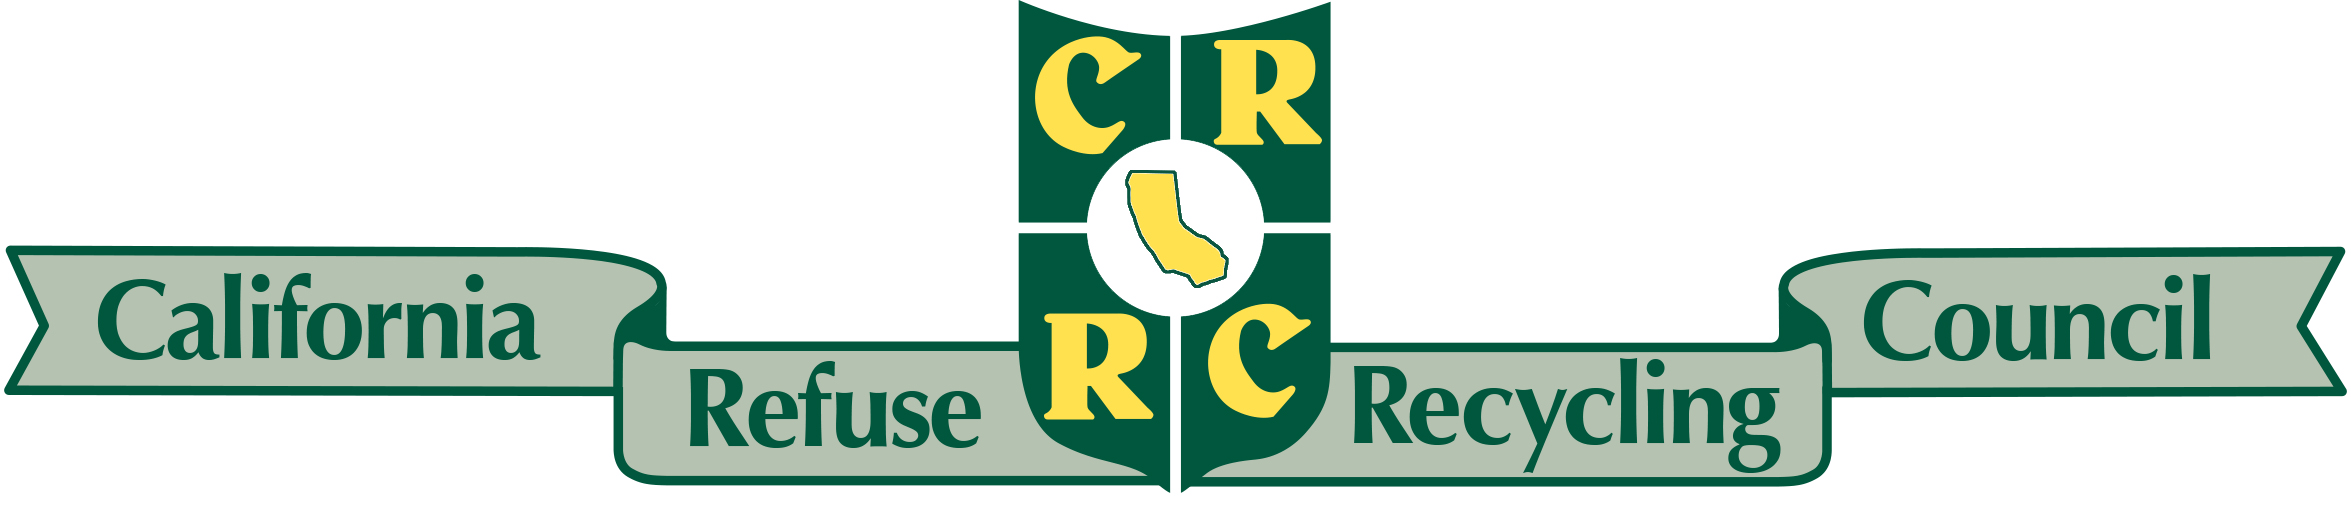 California Refuse Recycling Council